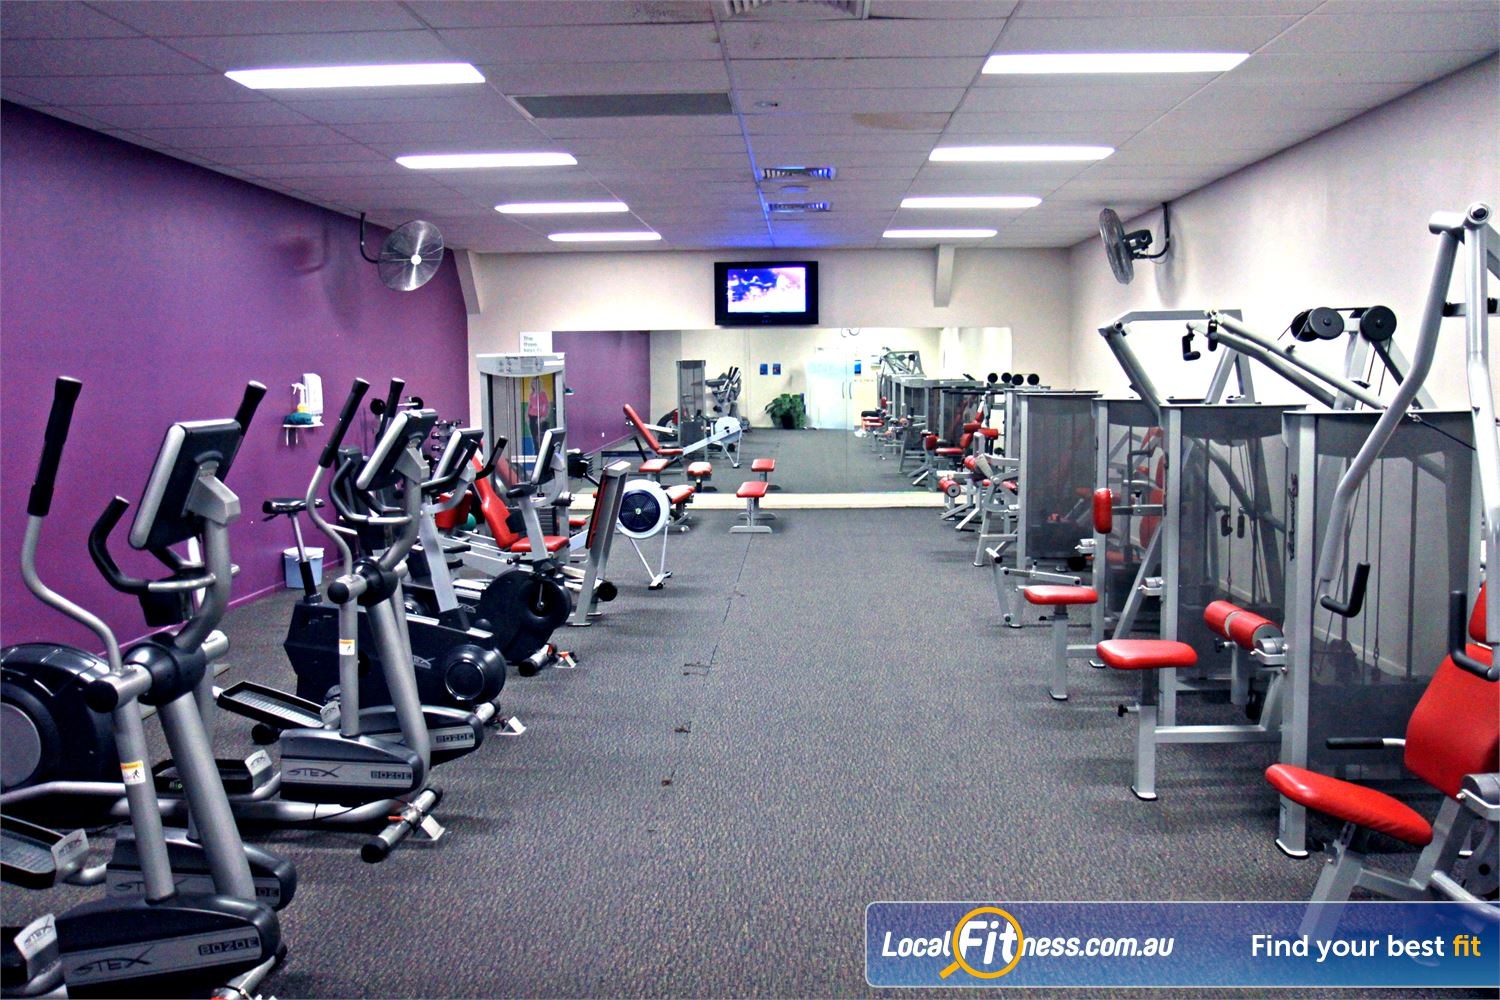 Goodlife Health Clubs Near Thornlands Our ladies gym supports a family-friendly gym environment.